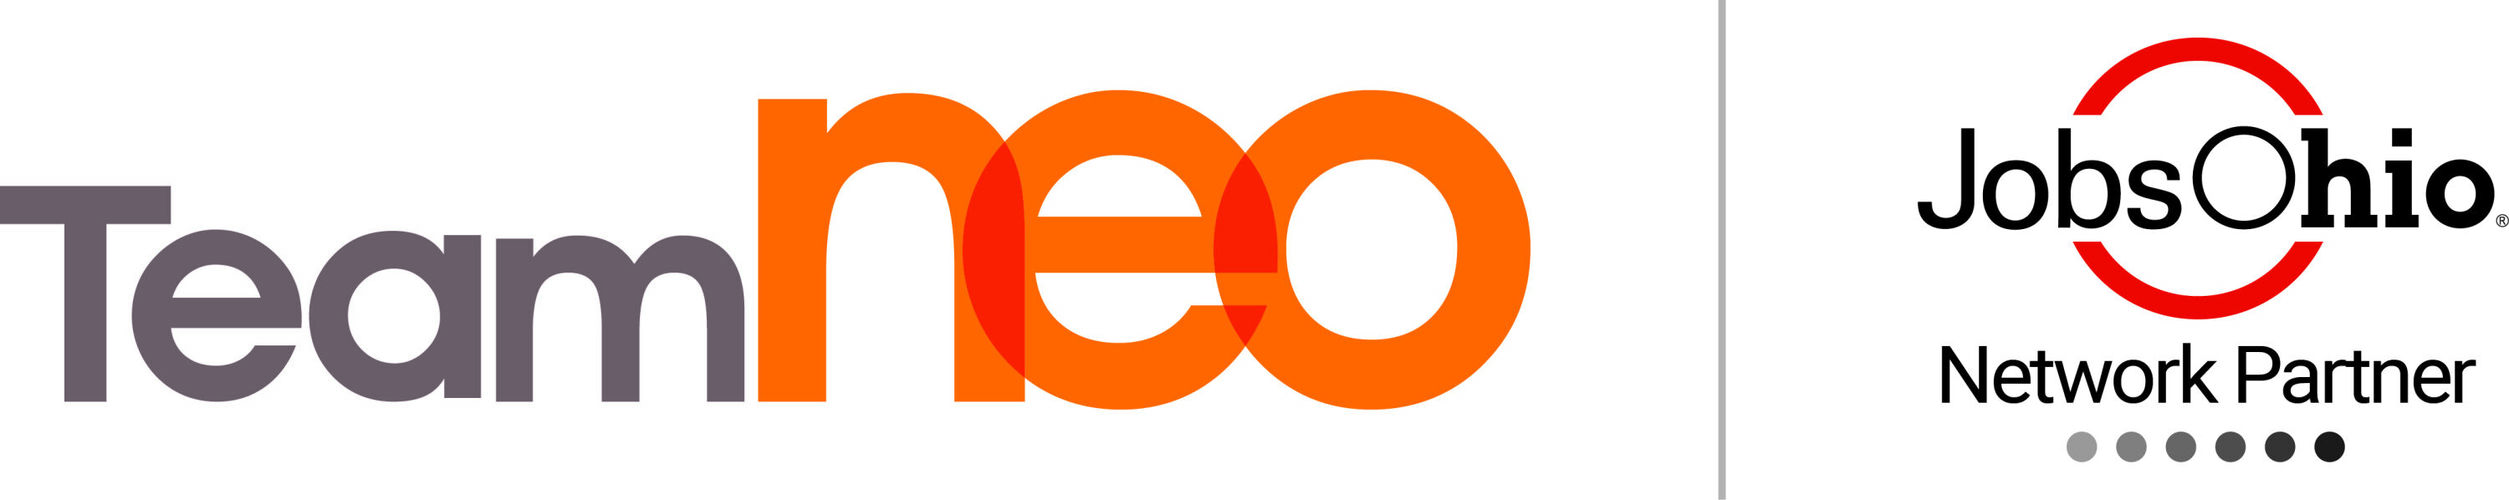 Team NEO and Jobs Ohio logos